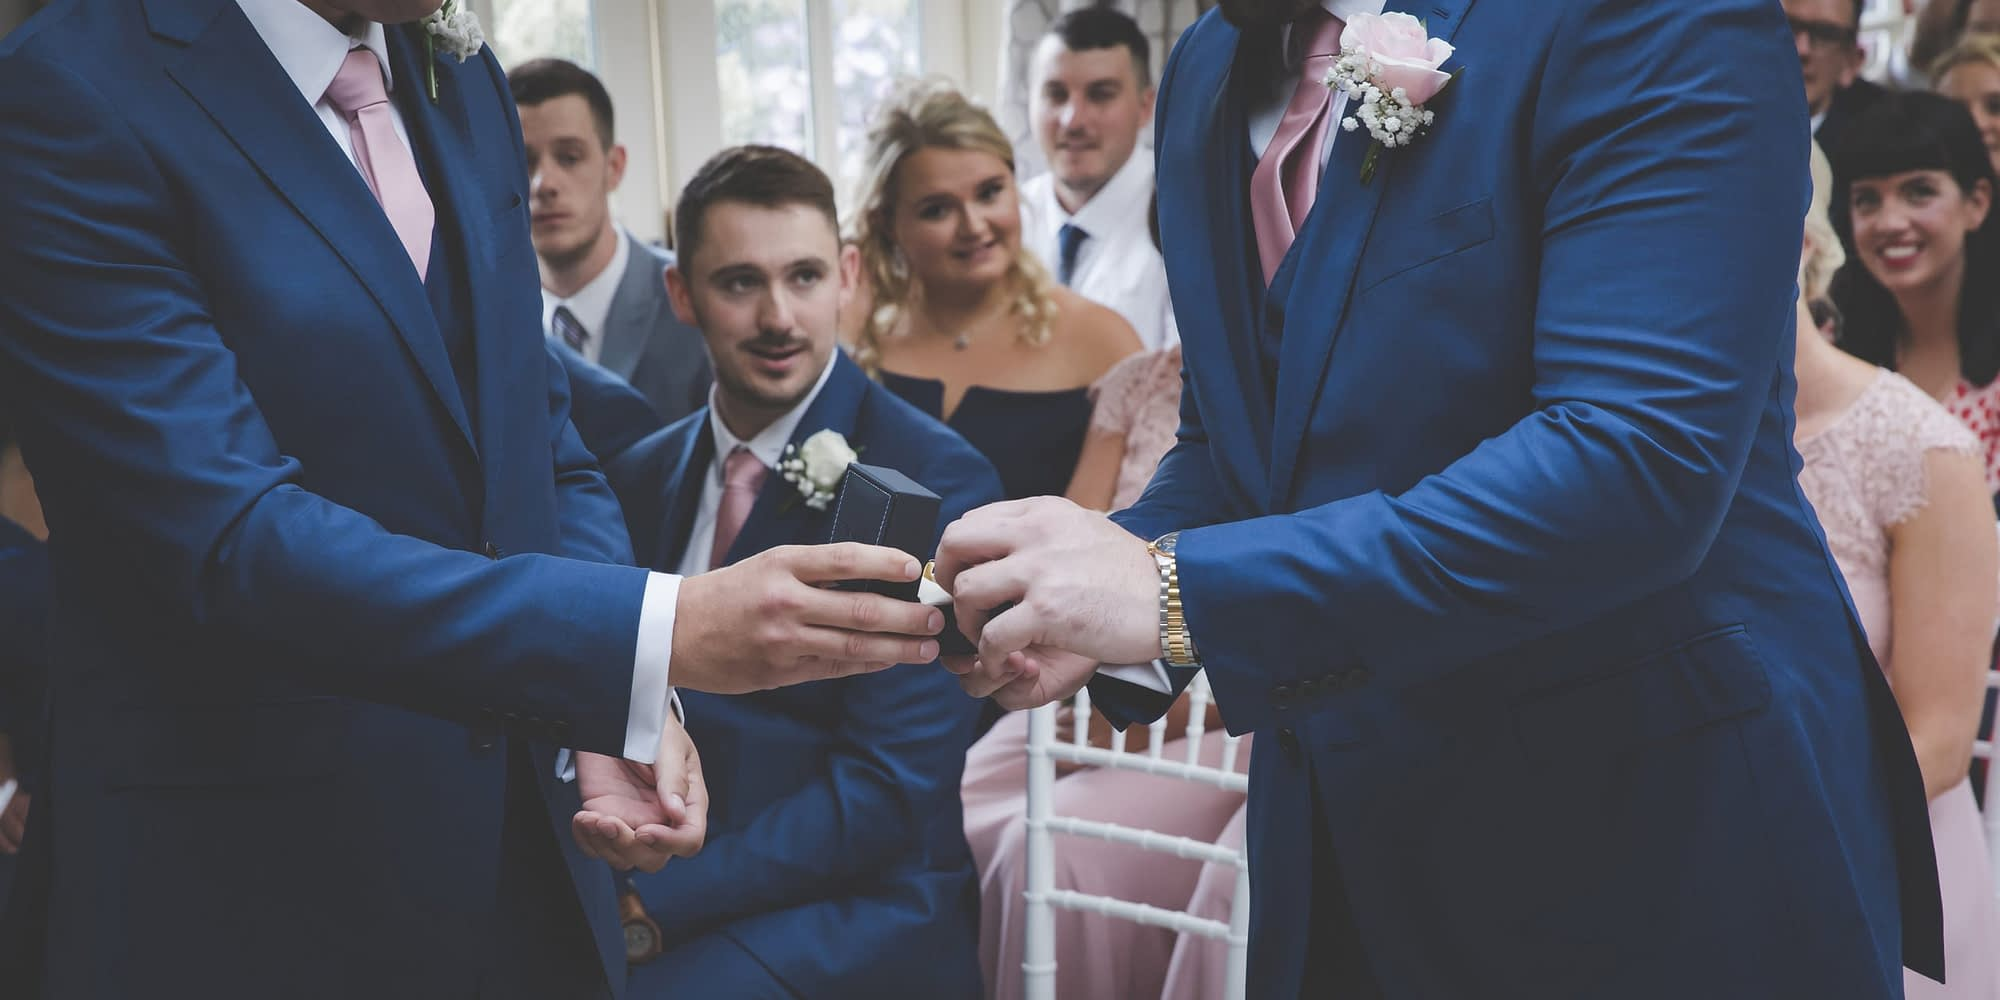 groom takes bride's ring from best man